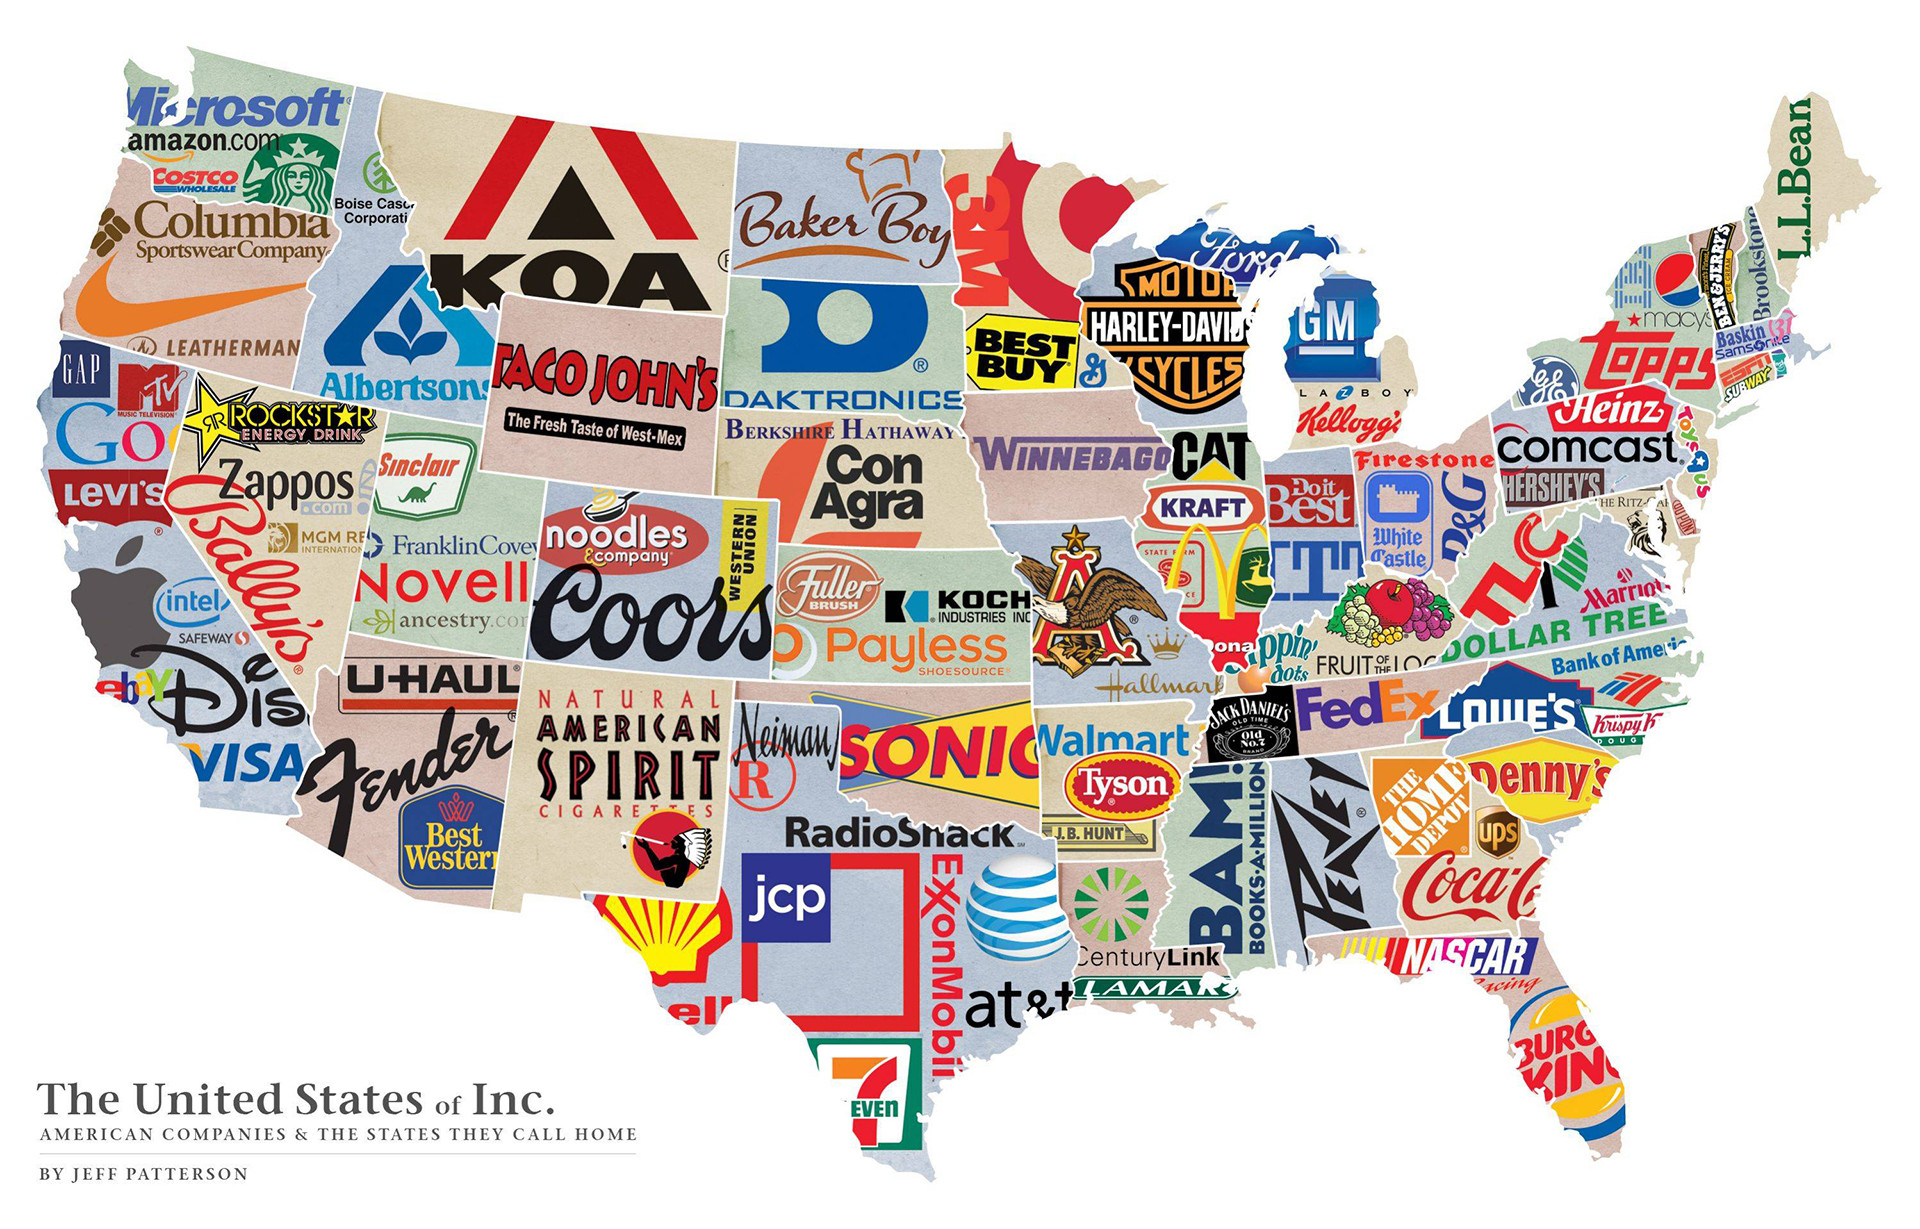 1920x1229 Corporations America United States White products labels text maps wallpaper  |  | 55147 | WallpaperUP